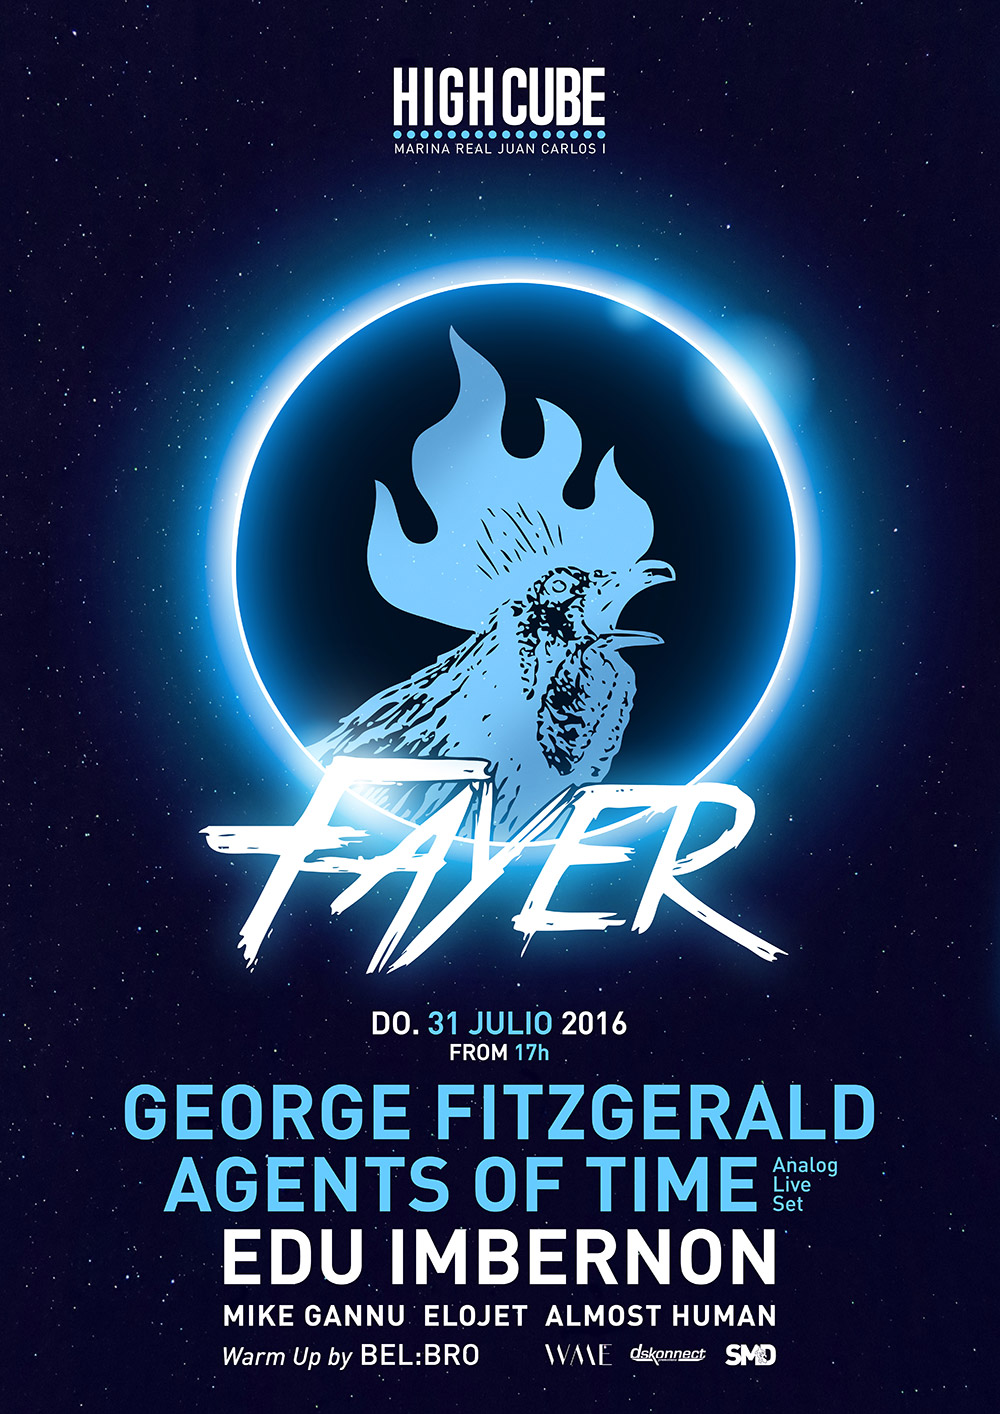 Fayer next sunday 31st of july 2016 with Agents of Time, George Fitzgerald, Edu Imbernon, Almost Human, Elojet and Mike Gannu at High Cube Valencia